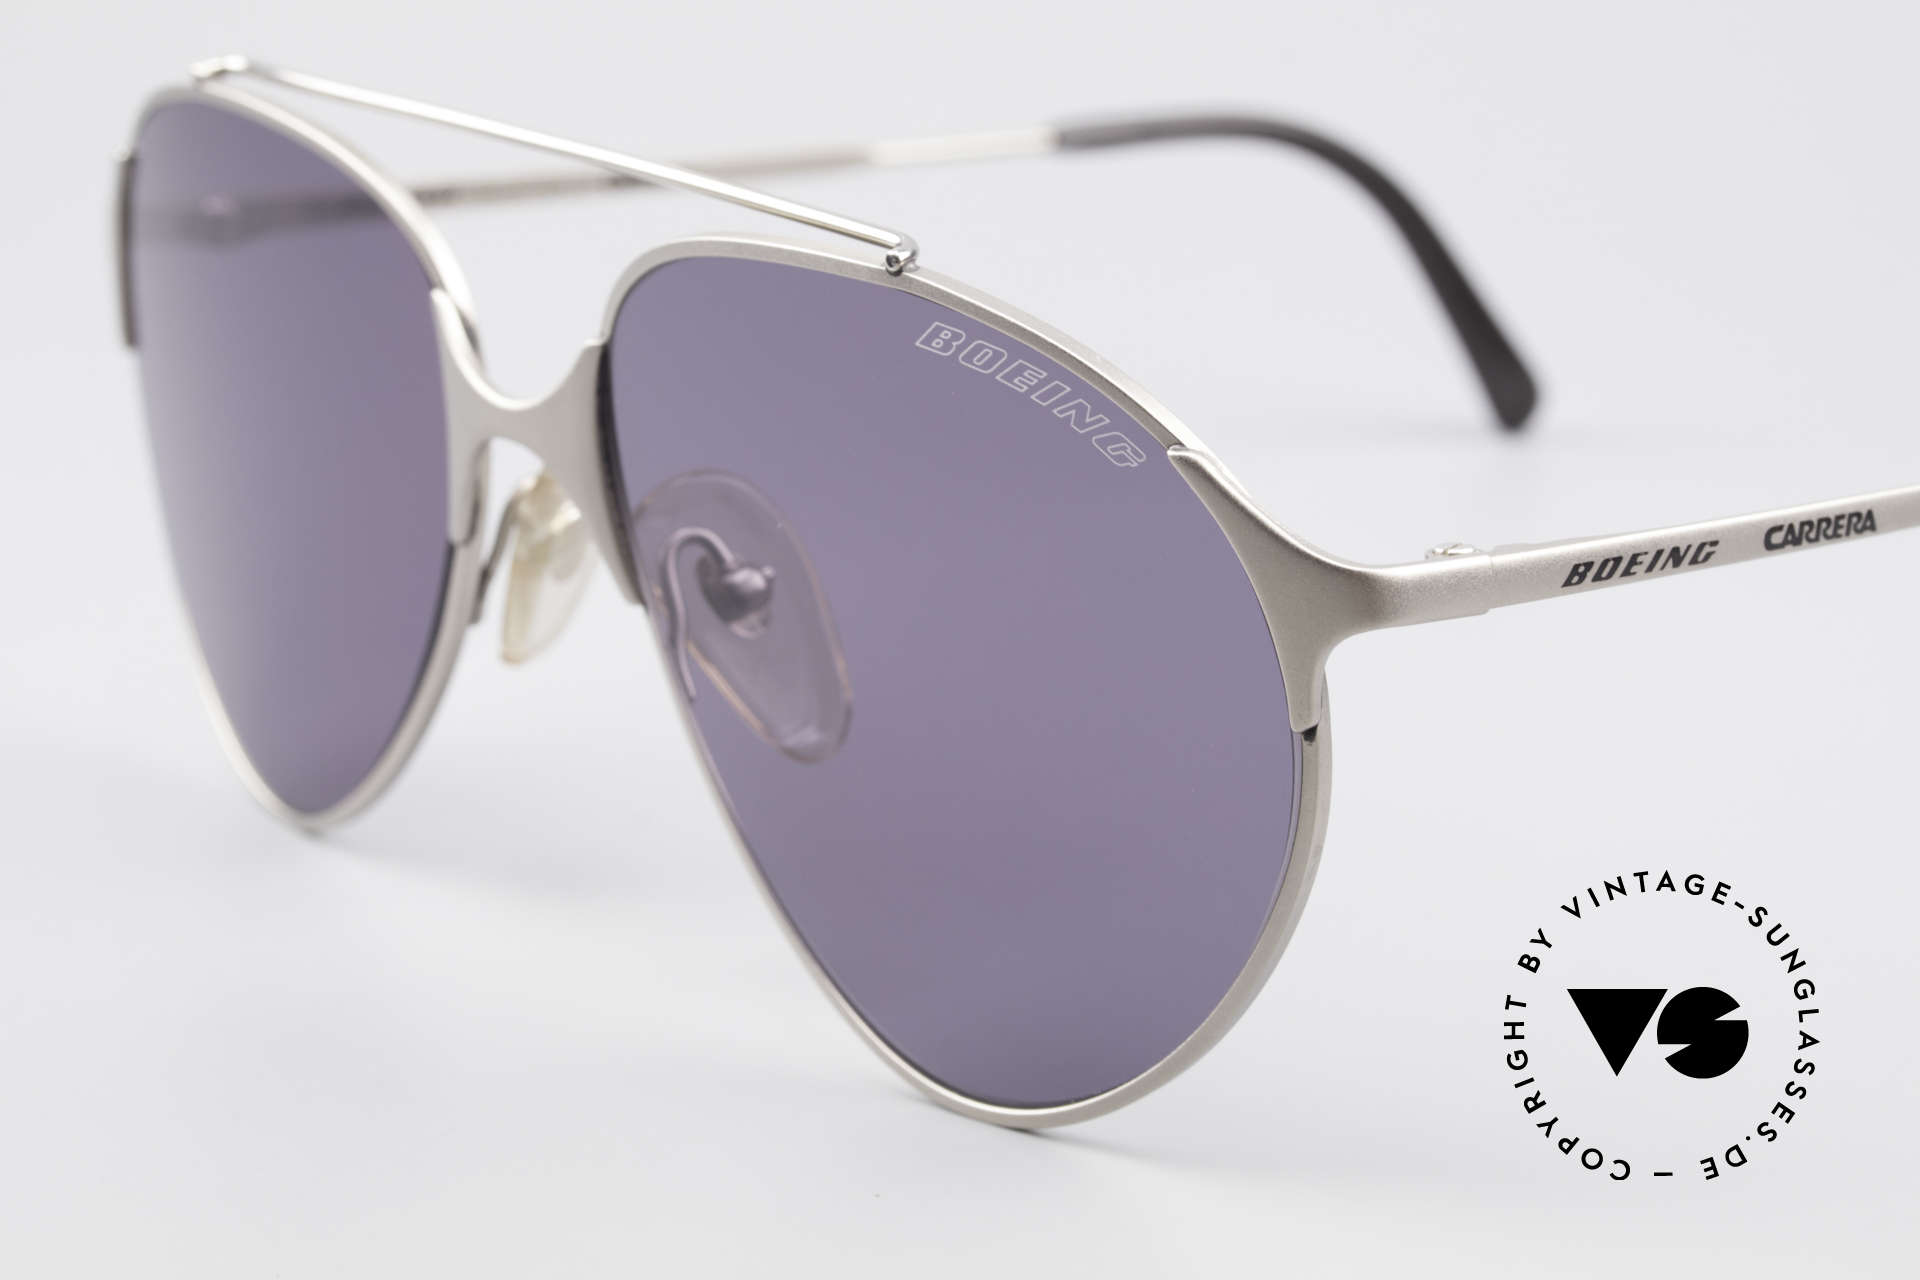 Boeing 5710 Mickey Rourke Killshot Shades, new old stock (like all our classic Boeing aviator shades), Made for Men